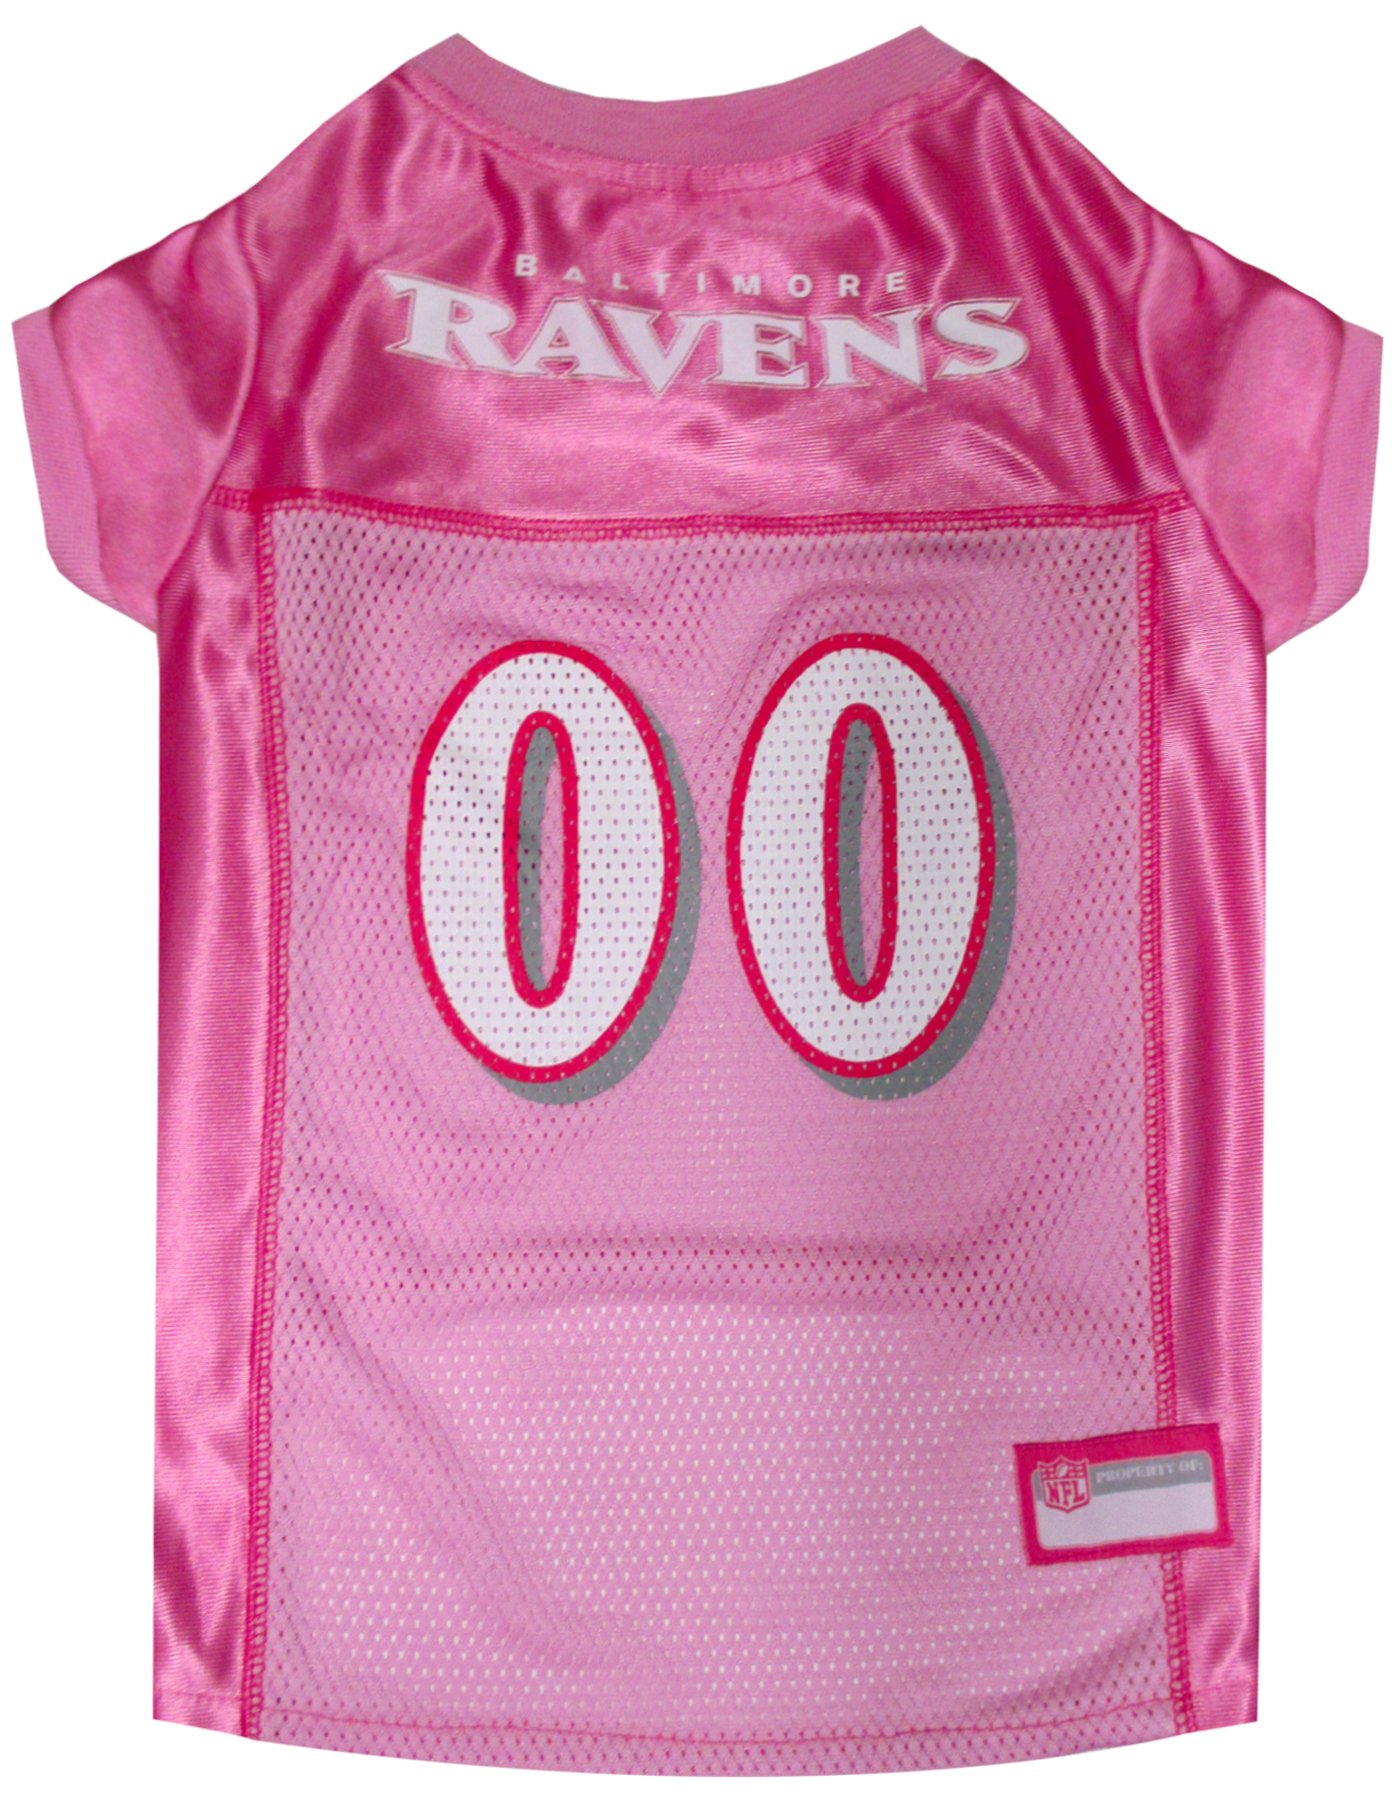 Pets First NFL Baltimore Ravens Pet Jersey, Pink, Small